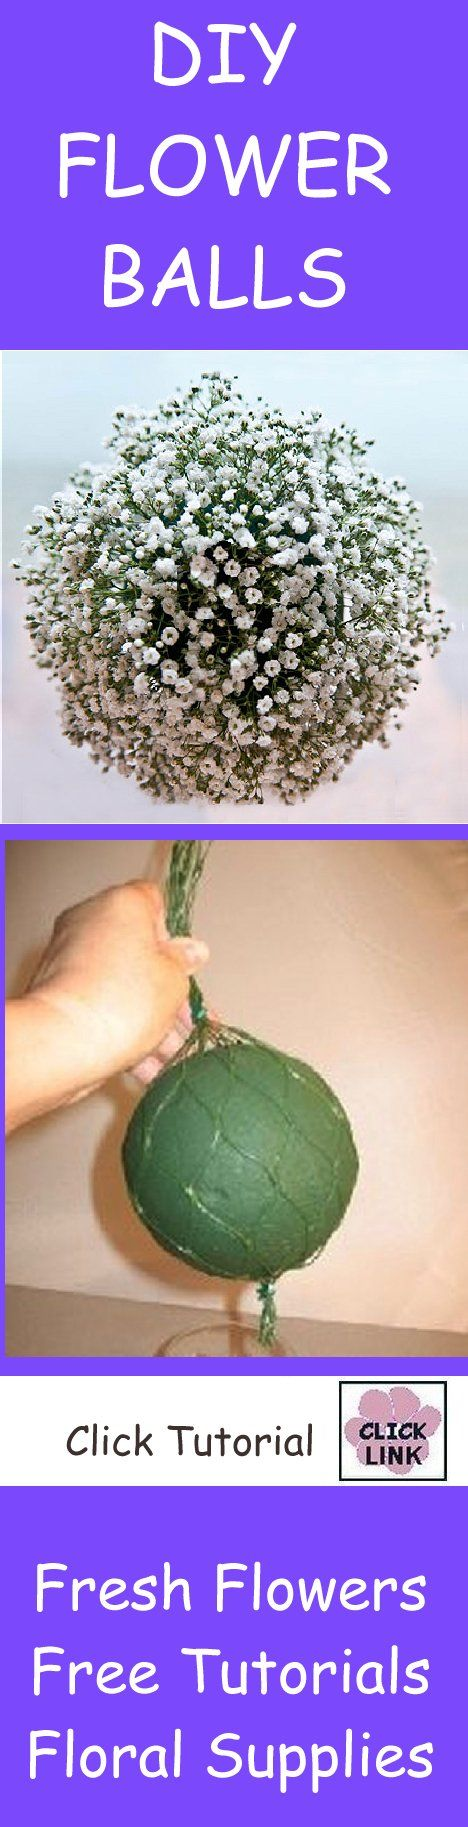 How to Make a Fresh Baby's Breath Flower Ball - Attendent pomanders, pew decorations or hanging balls at the ceremony are much easier with Oasis Netted Spheres. Great idea!